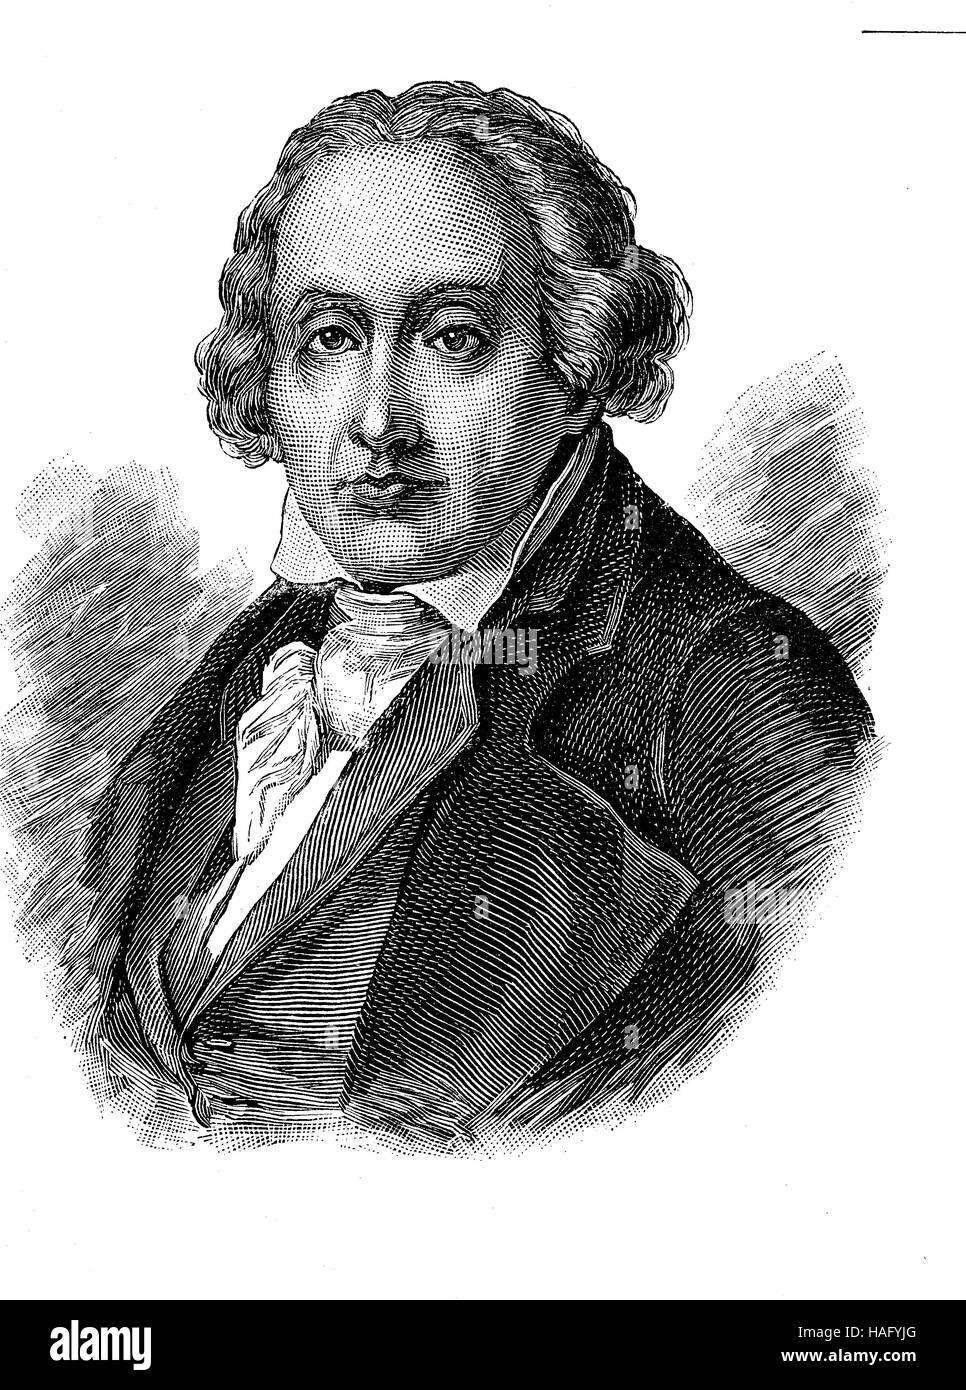 Joseph Marie Charles Jacquard, 7 July 1752 - 7 August 1834, was a French weaver and merchant, woodcut from the year - Stock Image